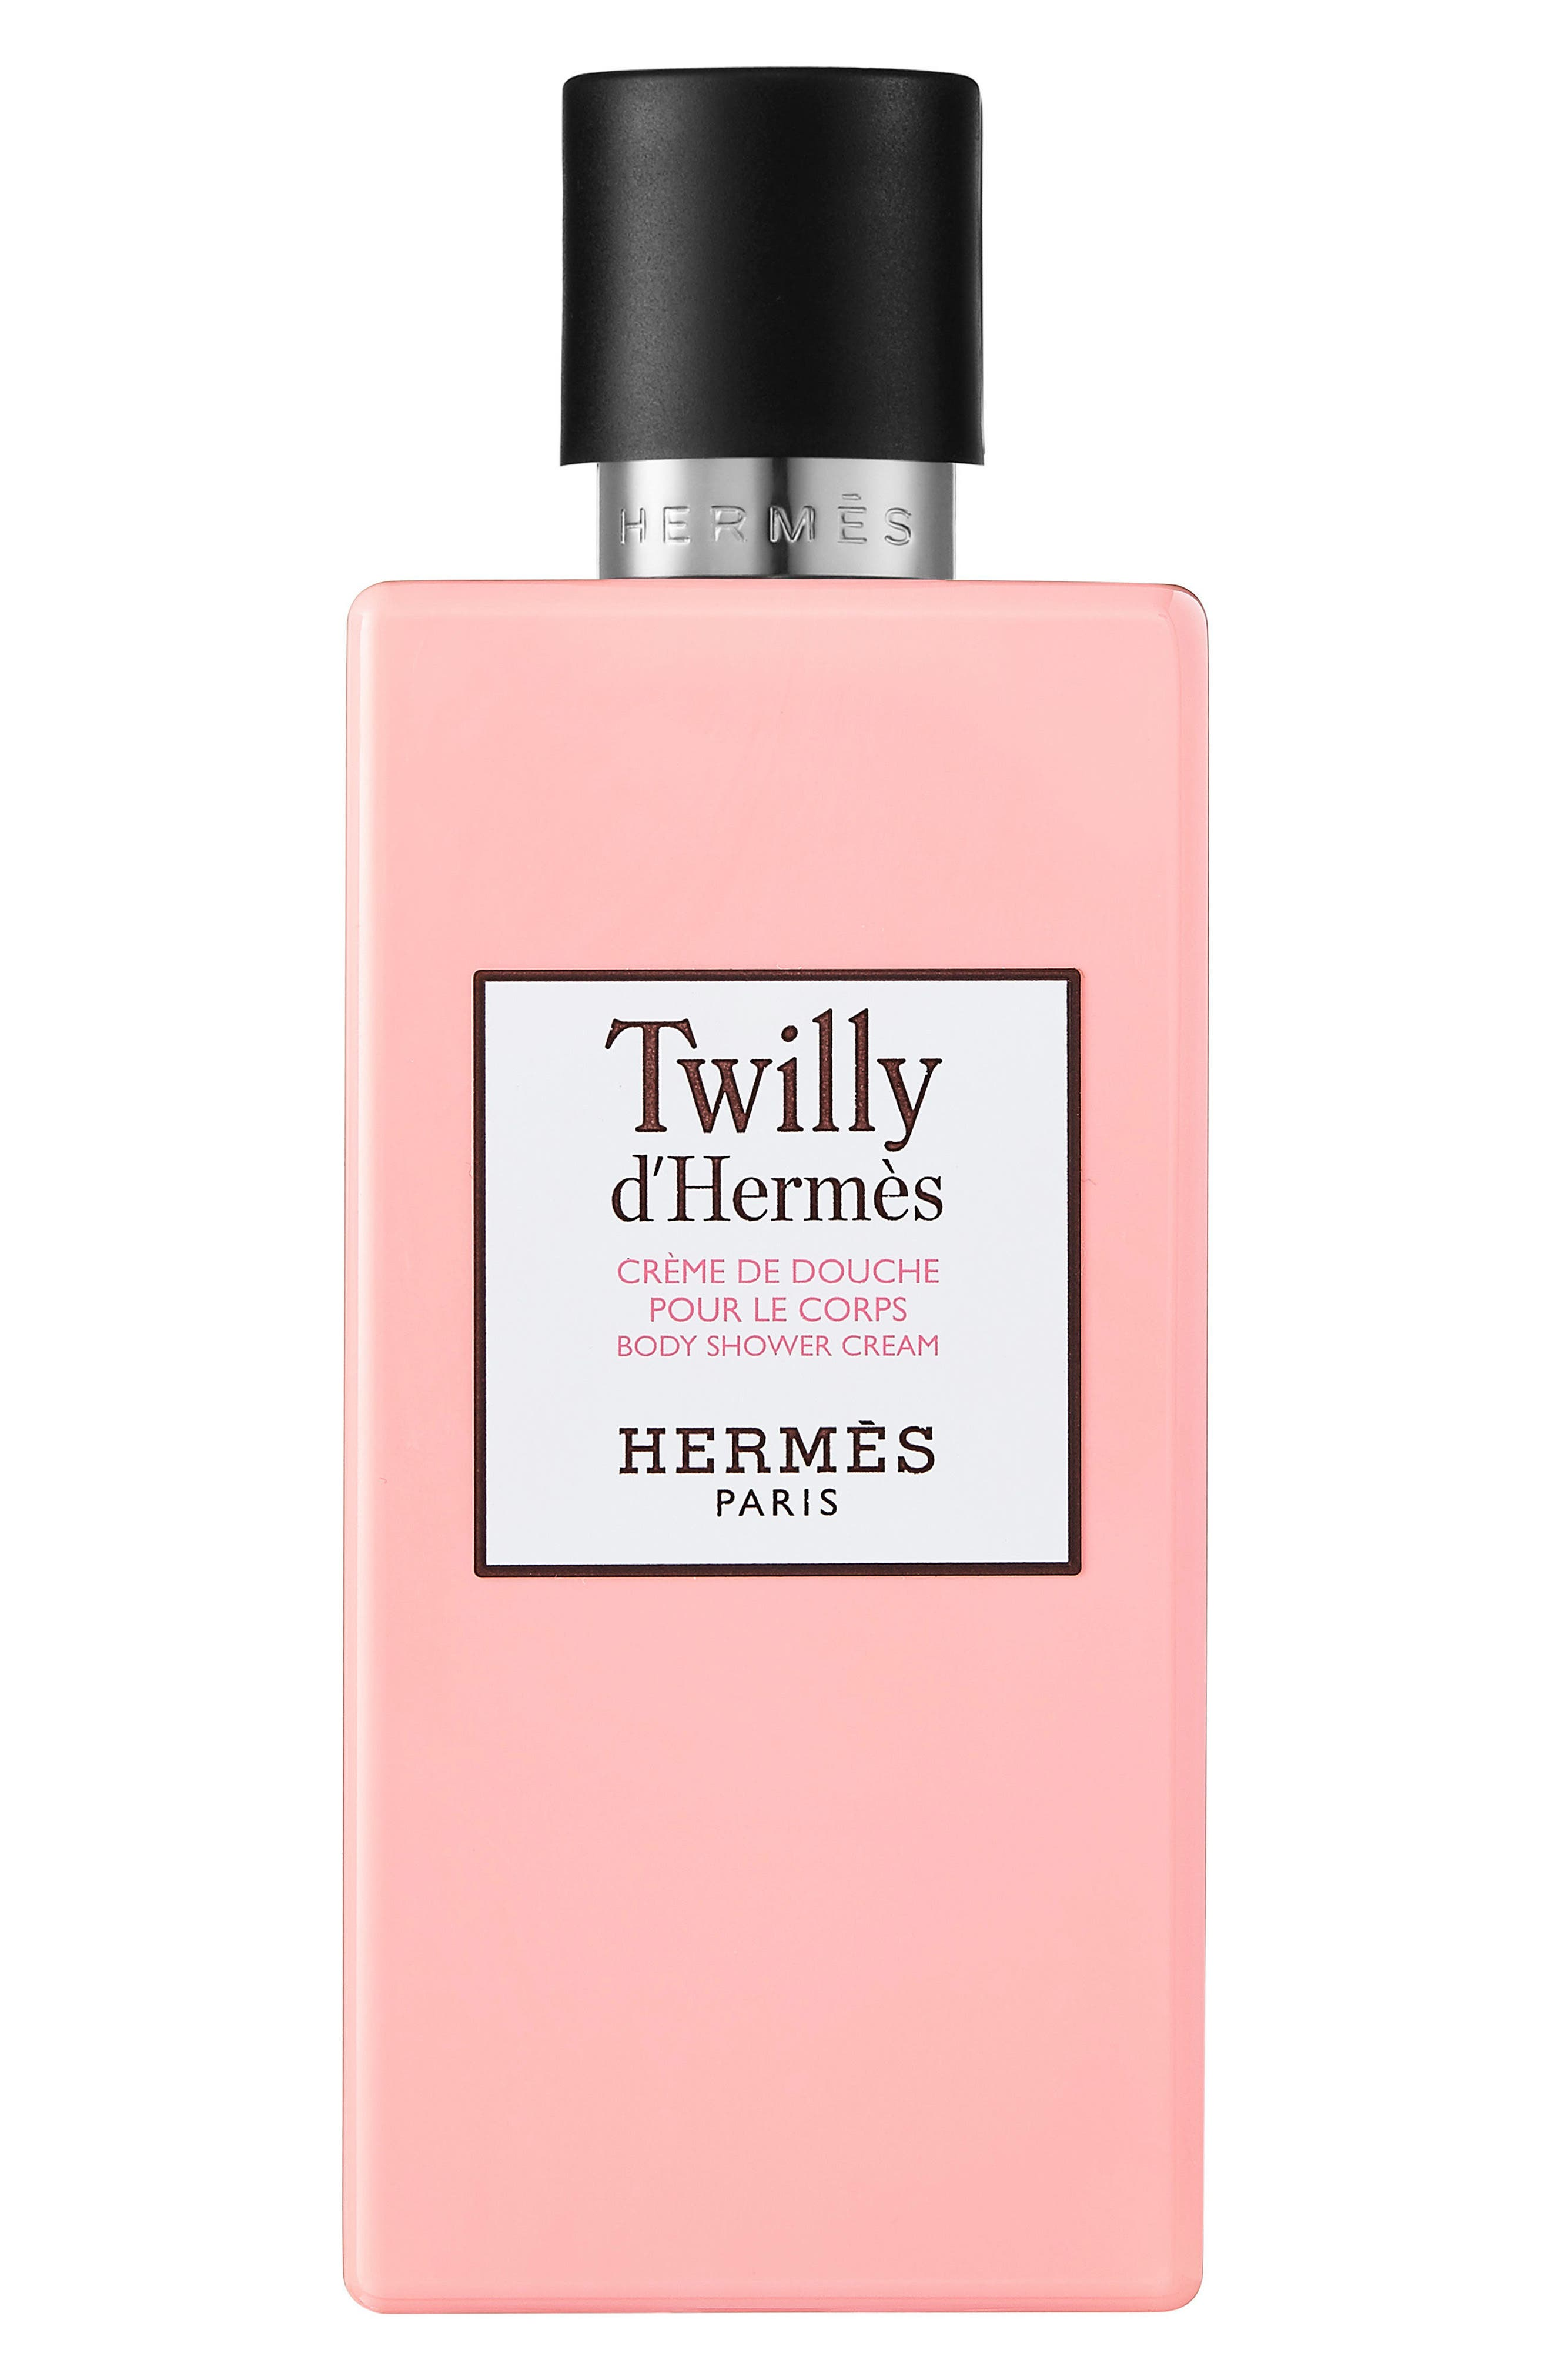 Twilly d'Hermès - Body shower cream,                             Main thumbnail 1, color,                             NO COLOR